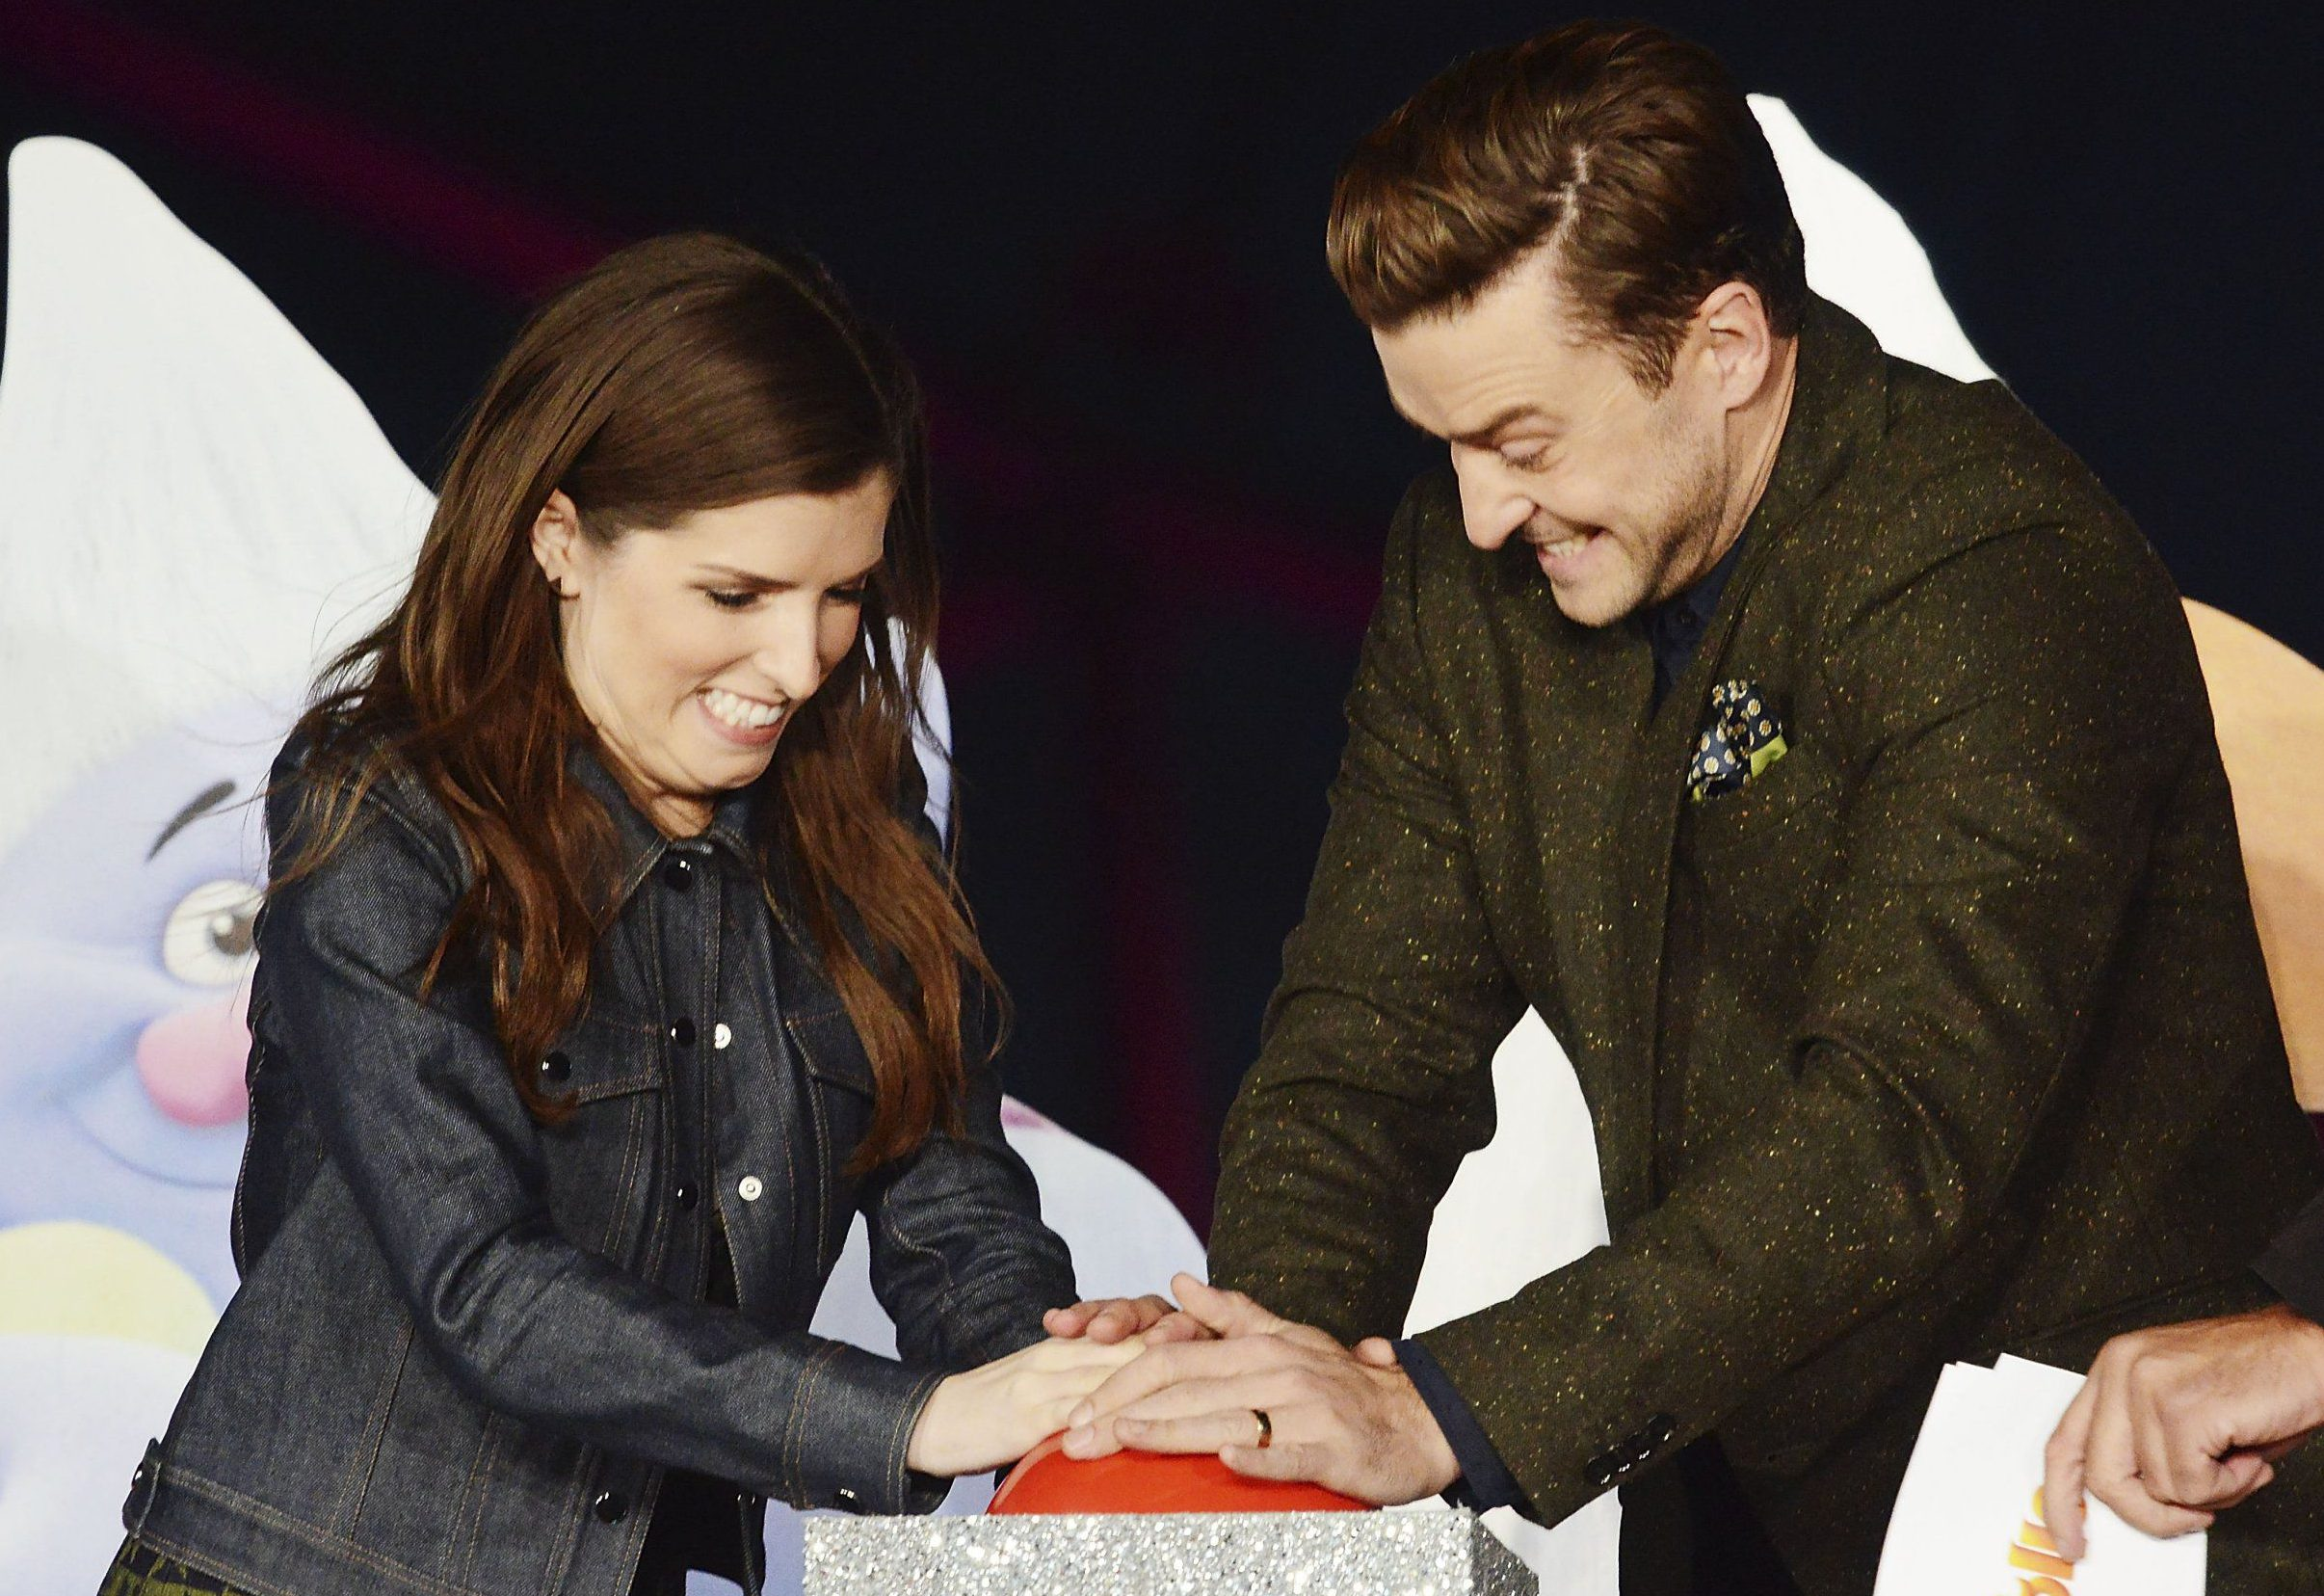 Justin Timberlake and Anna Kendrick tried to light up the London Eye but failed miserably